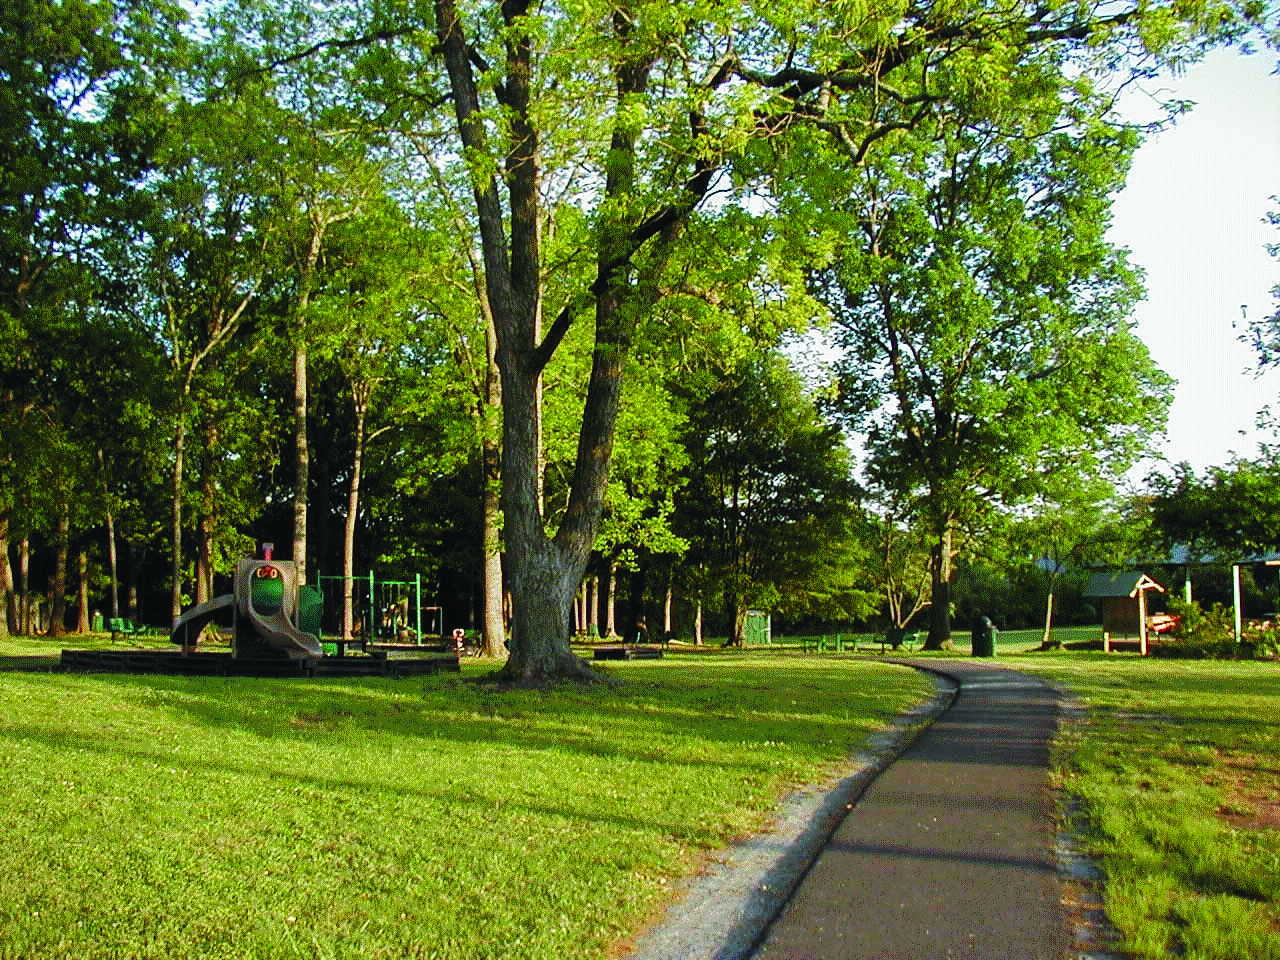 Located on Magnolia Avenue, a three-acre park with swing sets, slides, and other playground equipment.  A large covered shelter is available for community functions. Beautiful oak trees provide shade and beauty to this lovely landscaped site.     To rent the Pavilion contact  Fiely Novilla: 864-223-8431 ext. 234